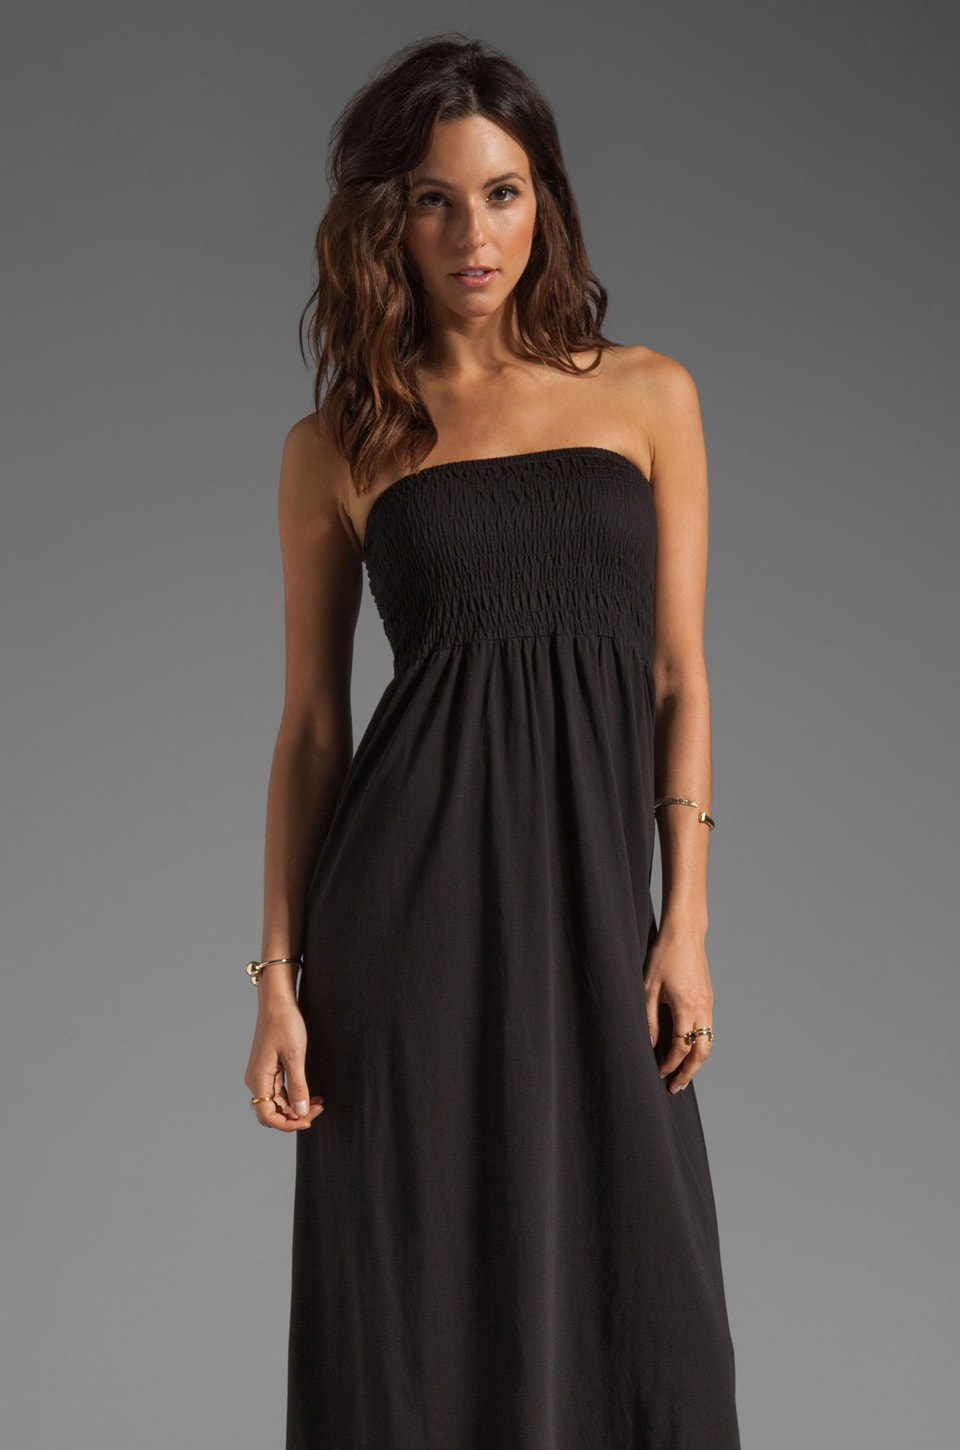 Soft Joie Vanlet Maxi Dress in Caviar